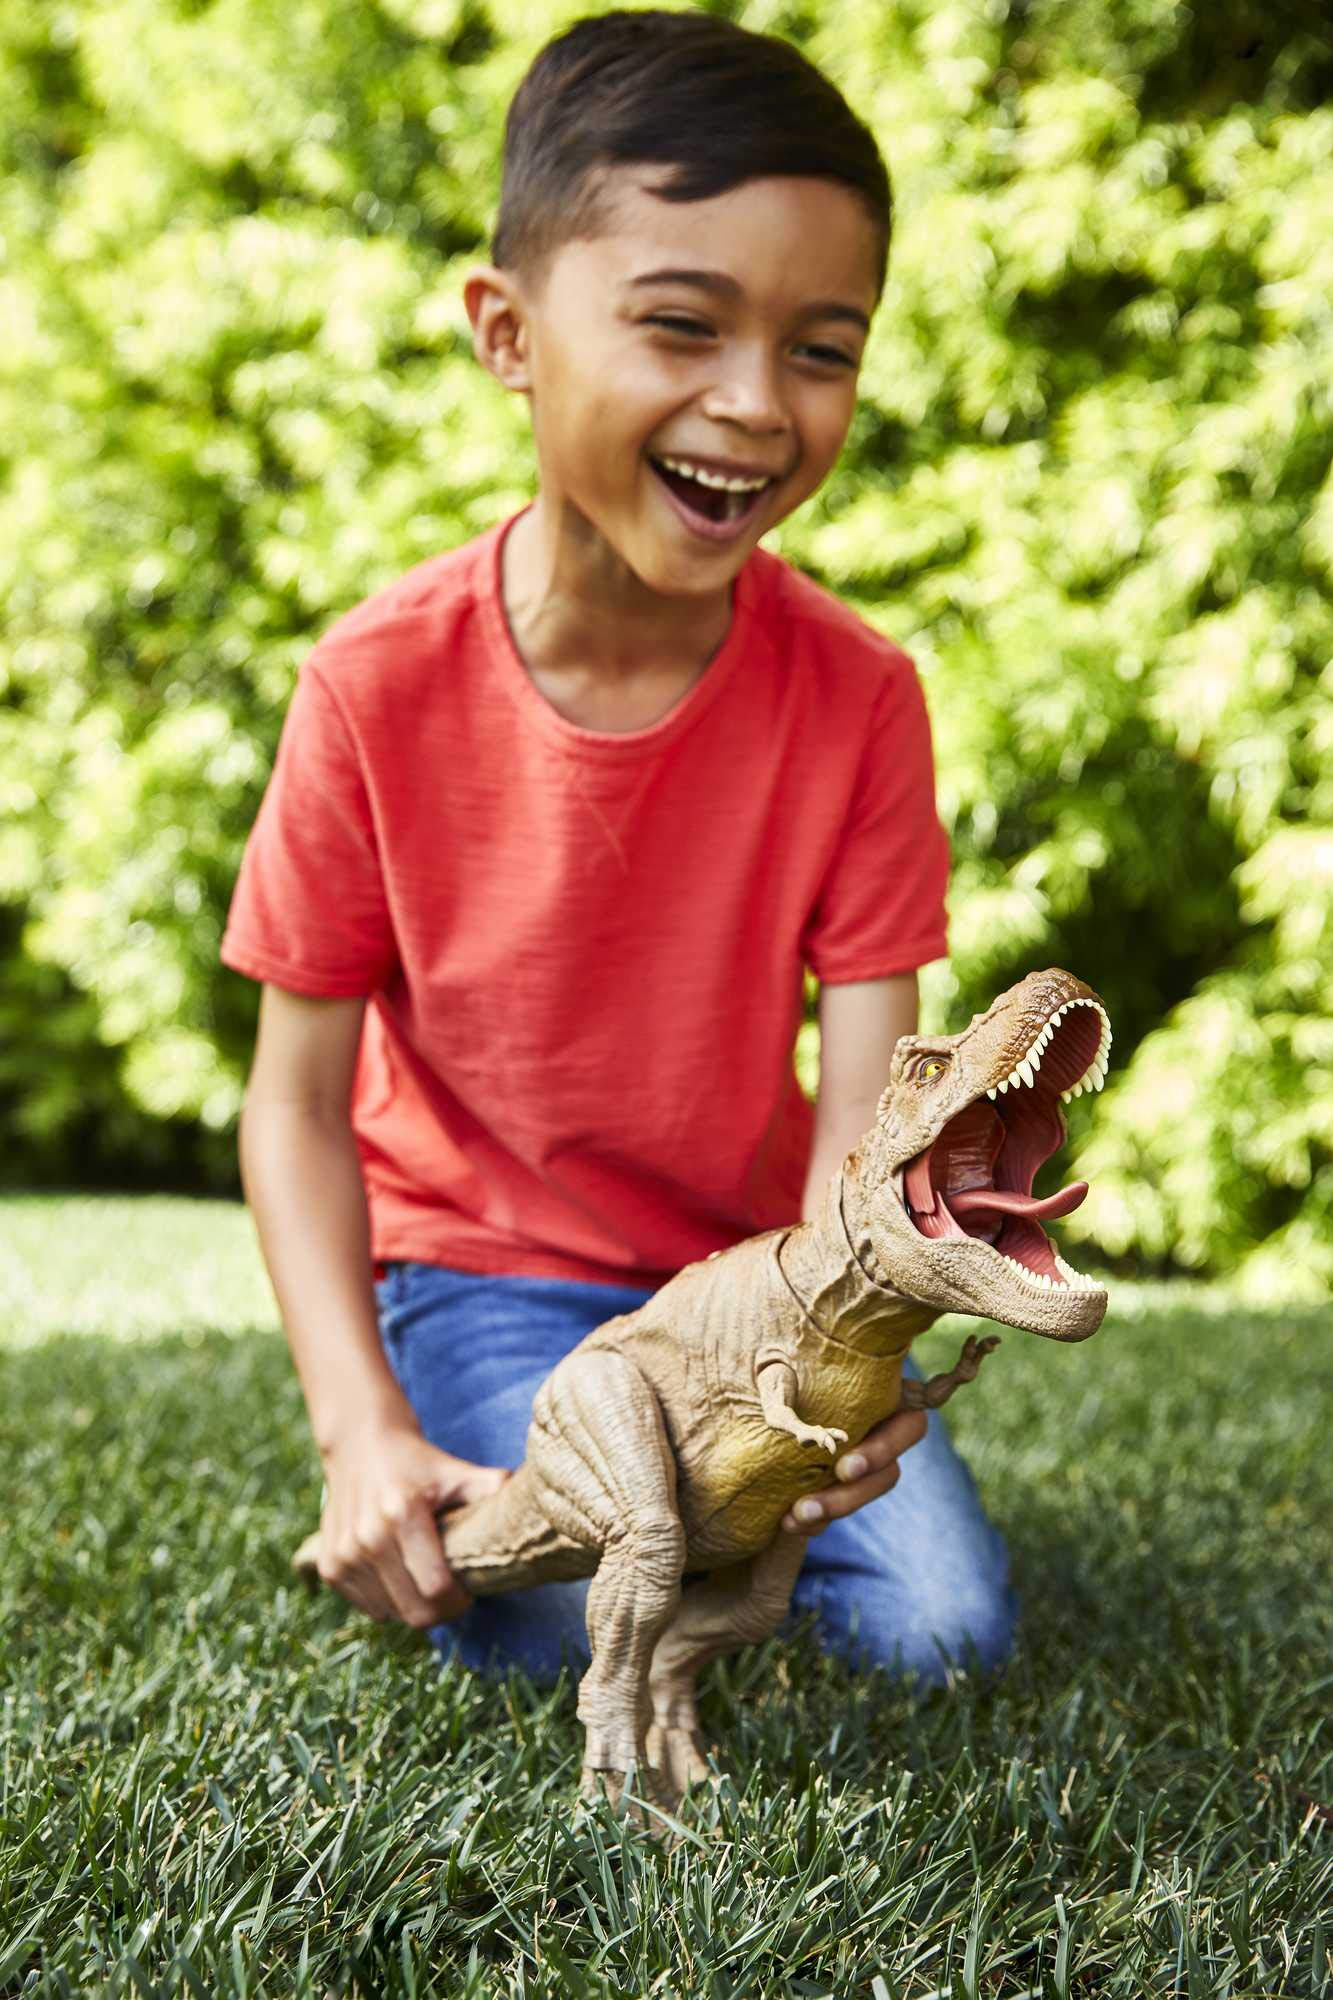 Jurassic World Epic Roarin' Tyrannosaurus Rex Large Action Figure with Primal Attack Feature, Sound, Realistic Shaking, Movable Joints; Ages 4 Years & Up